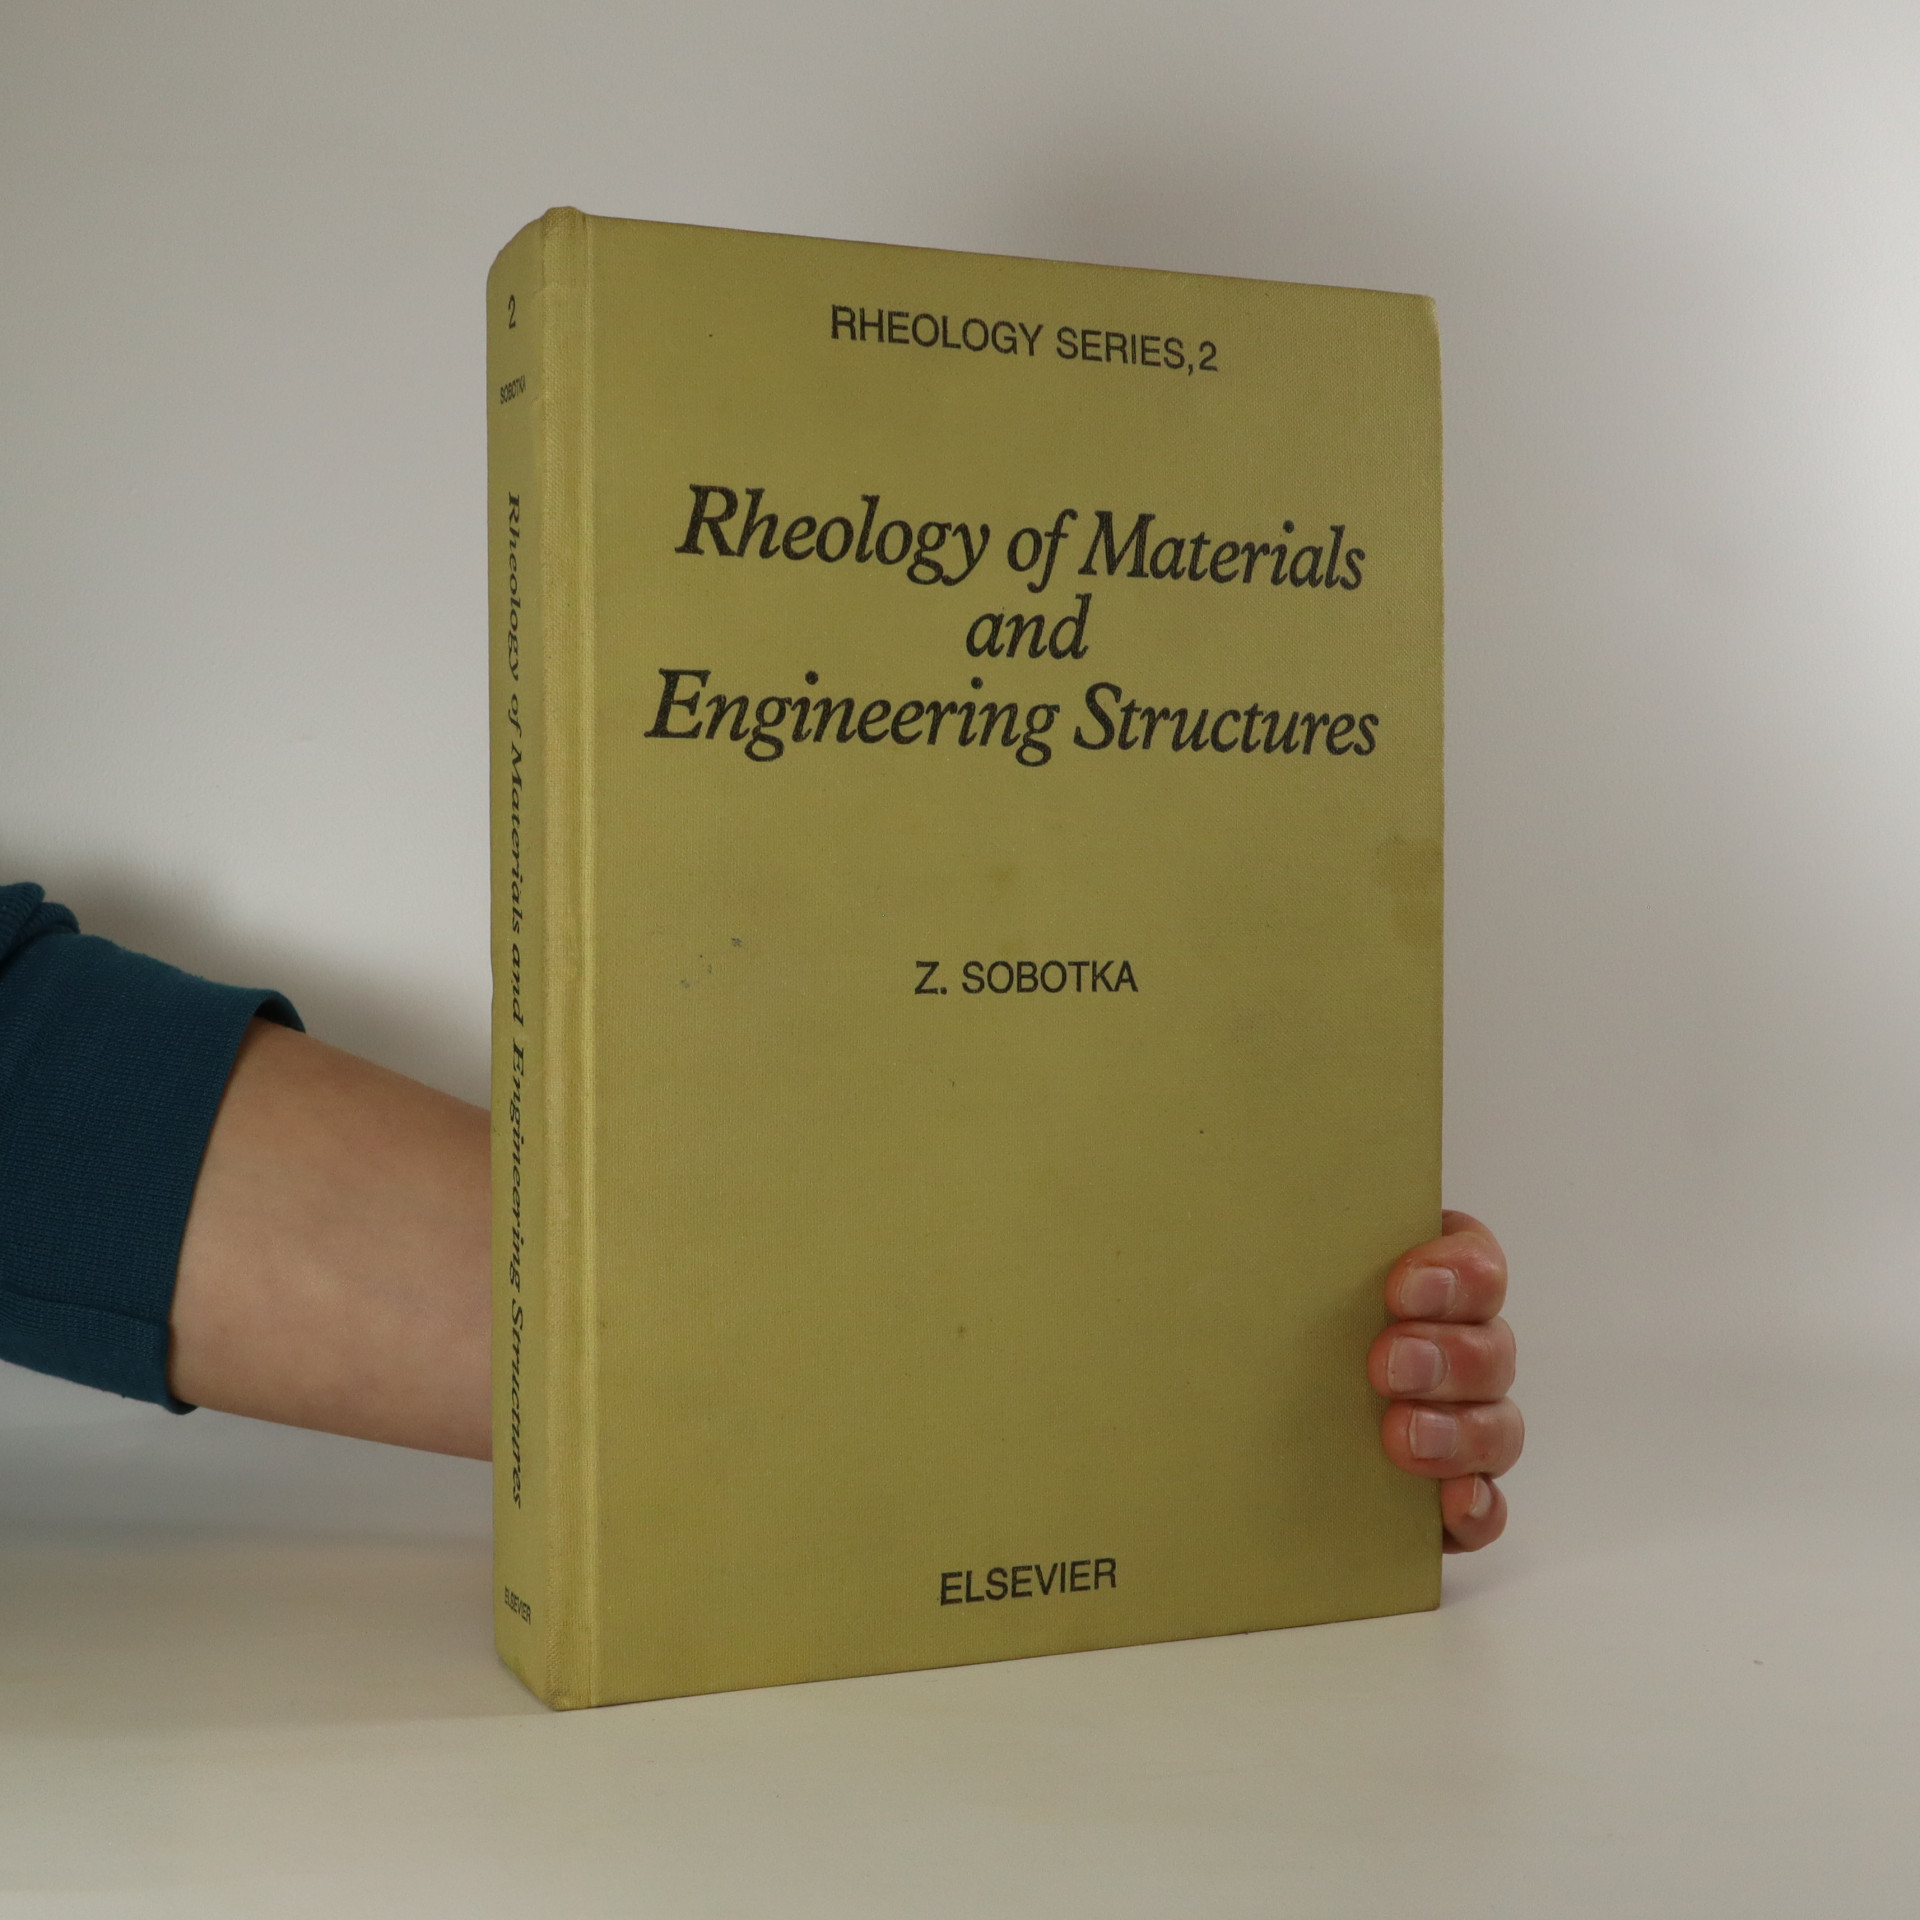 antikvární kniha Rheology of Materials and Engineering Structures (2. díl), 1984